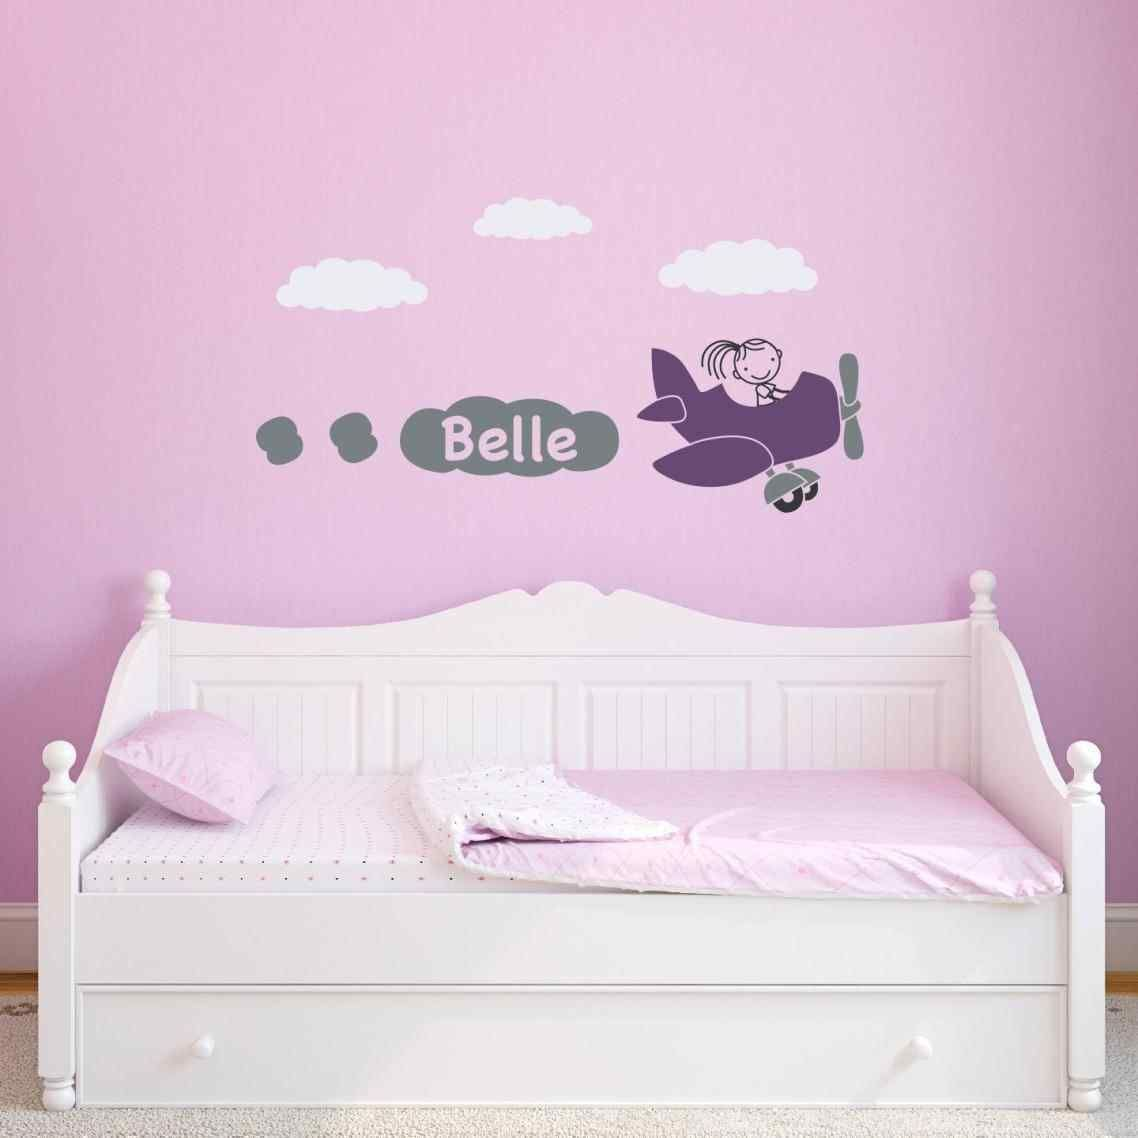 wall decals for girl bedroom pj masks in wall crack kids boy girls